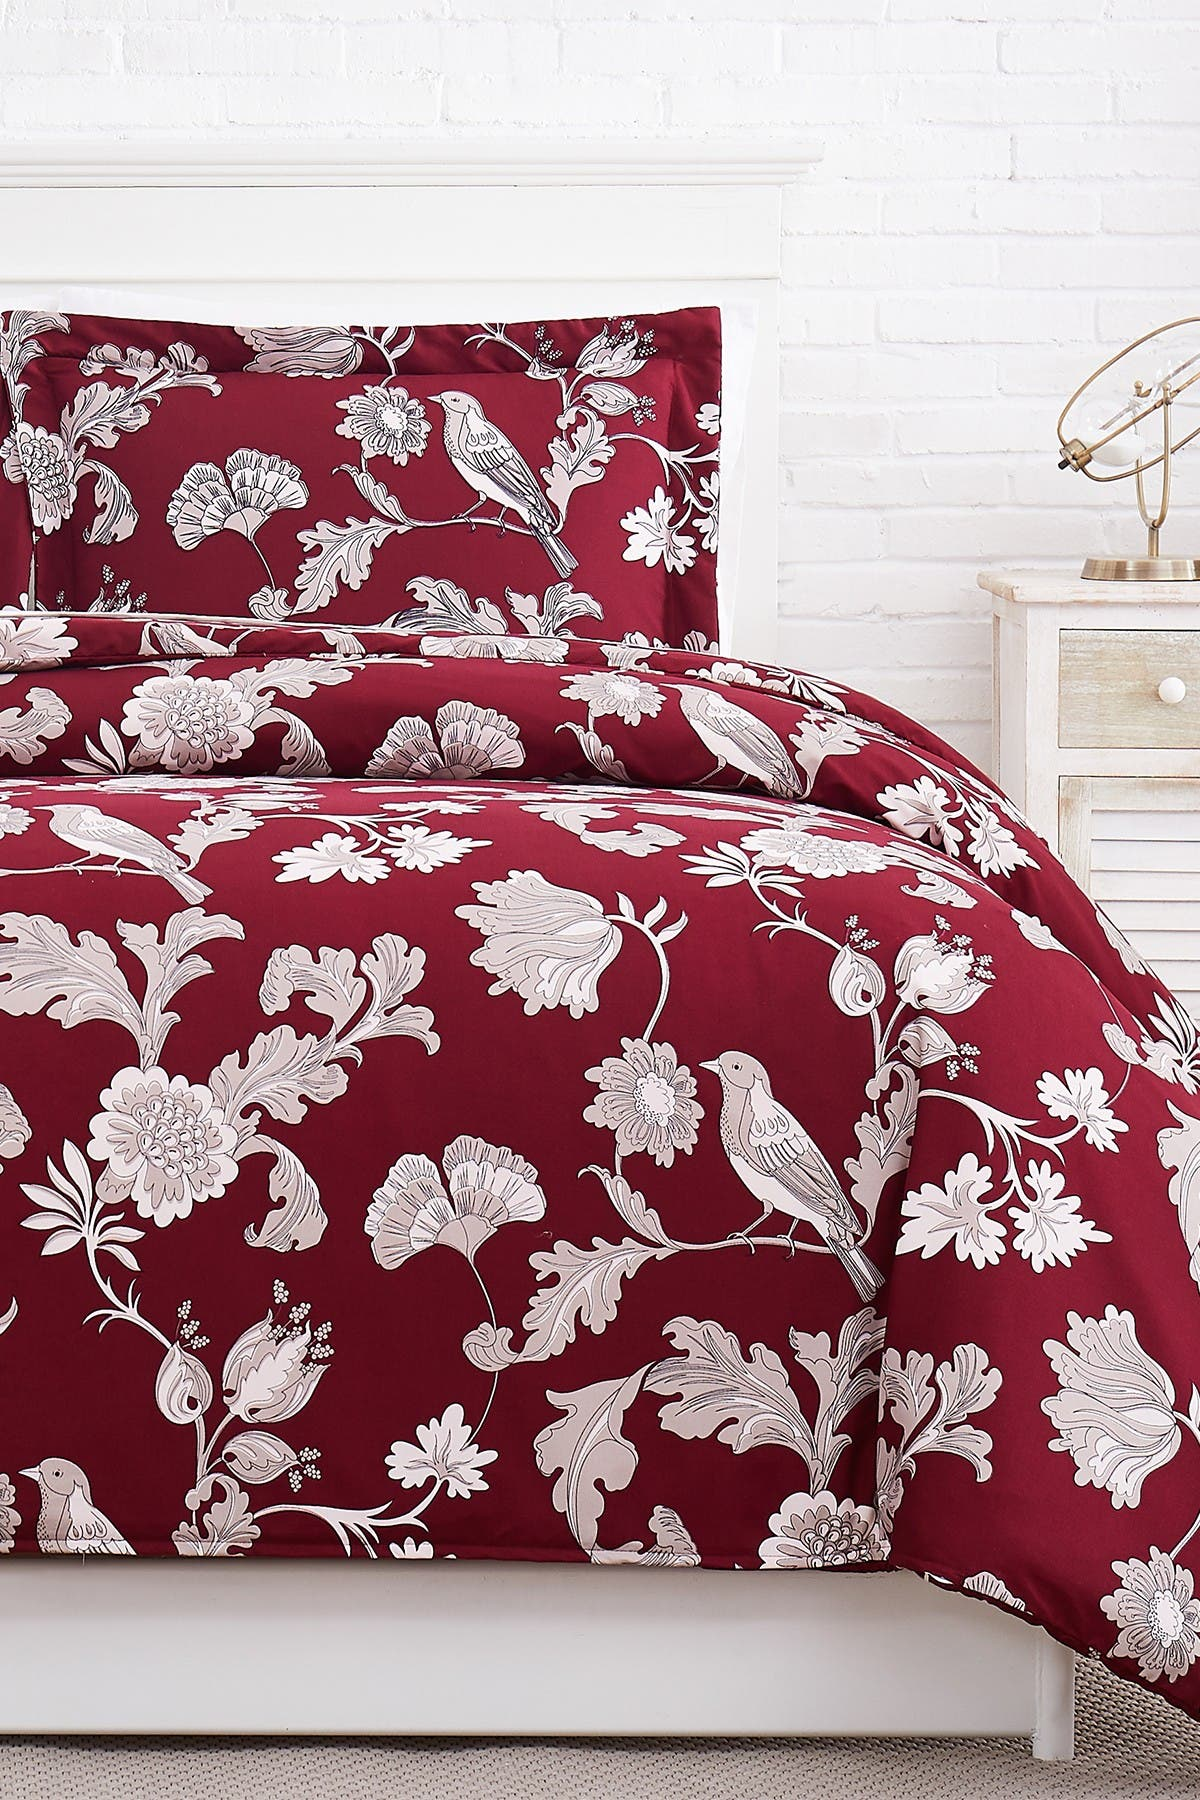 Image of SOUTHSHORE FINE LINENS Premium Collection Oversized Duvet Cover Sets 3-Piece Set - King/California King